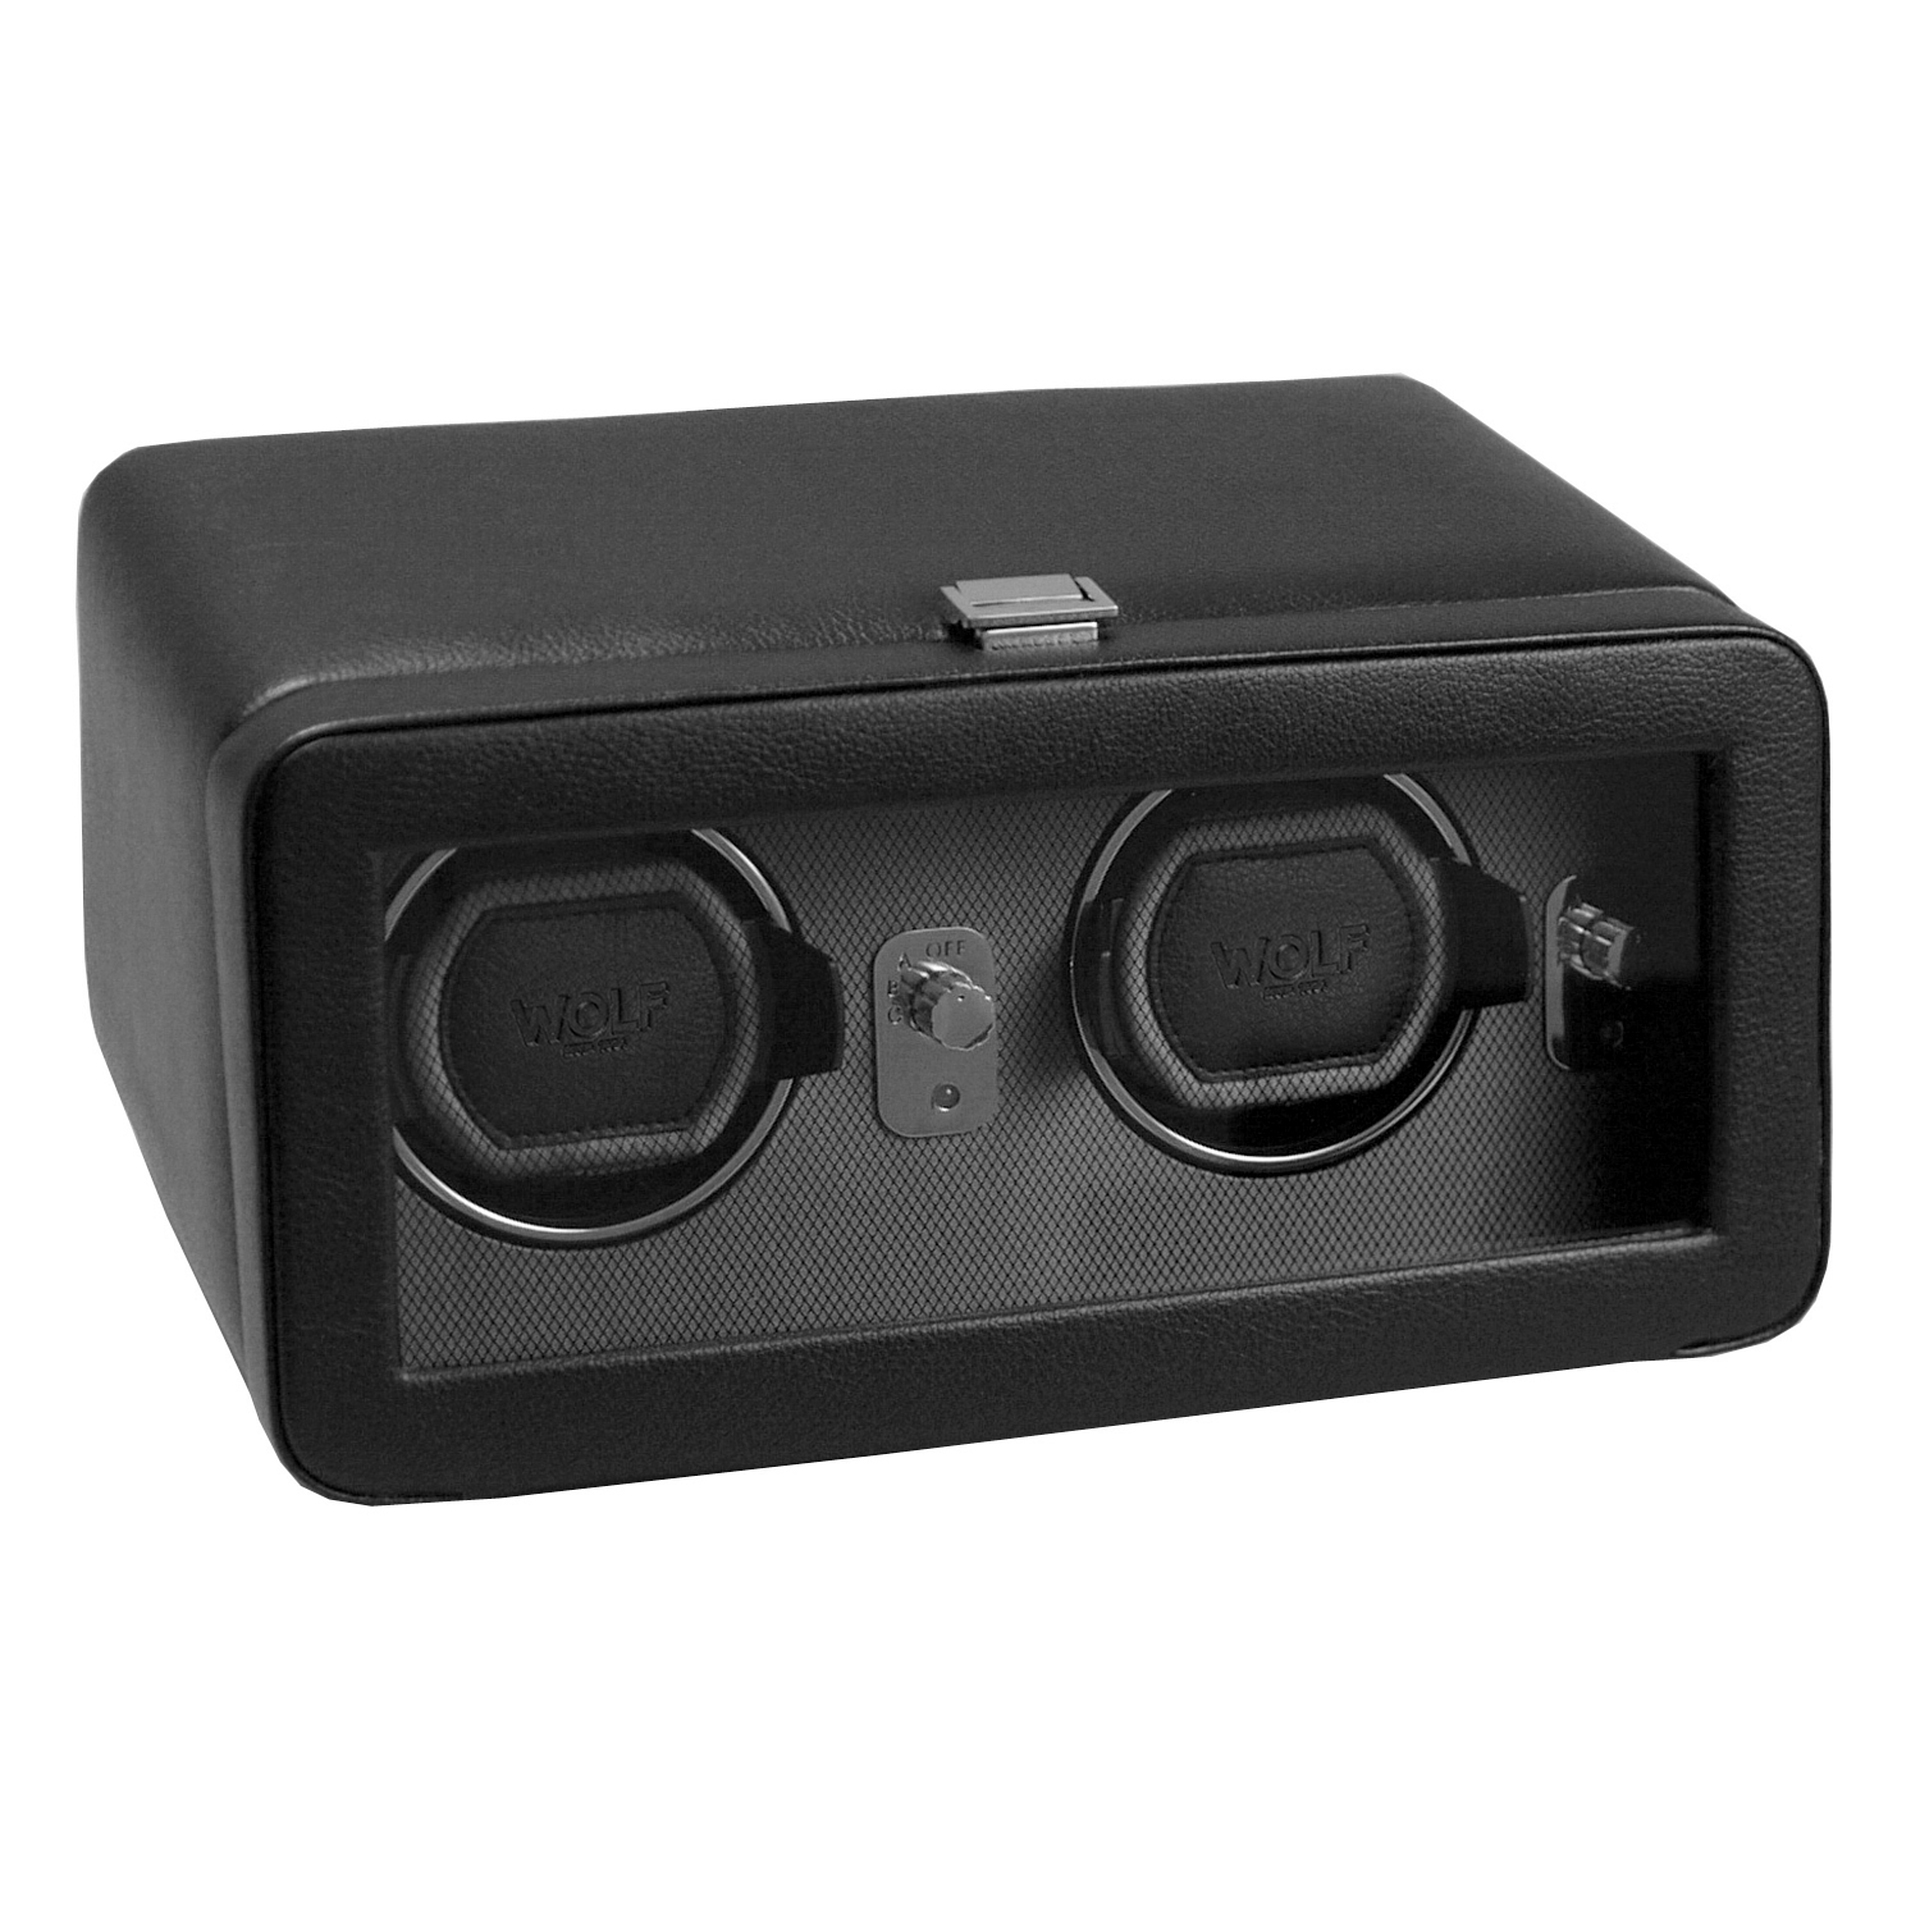 WOLF Windsor Double Black Travel Watch Winder Module 2.5 with Cover